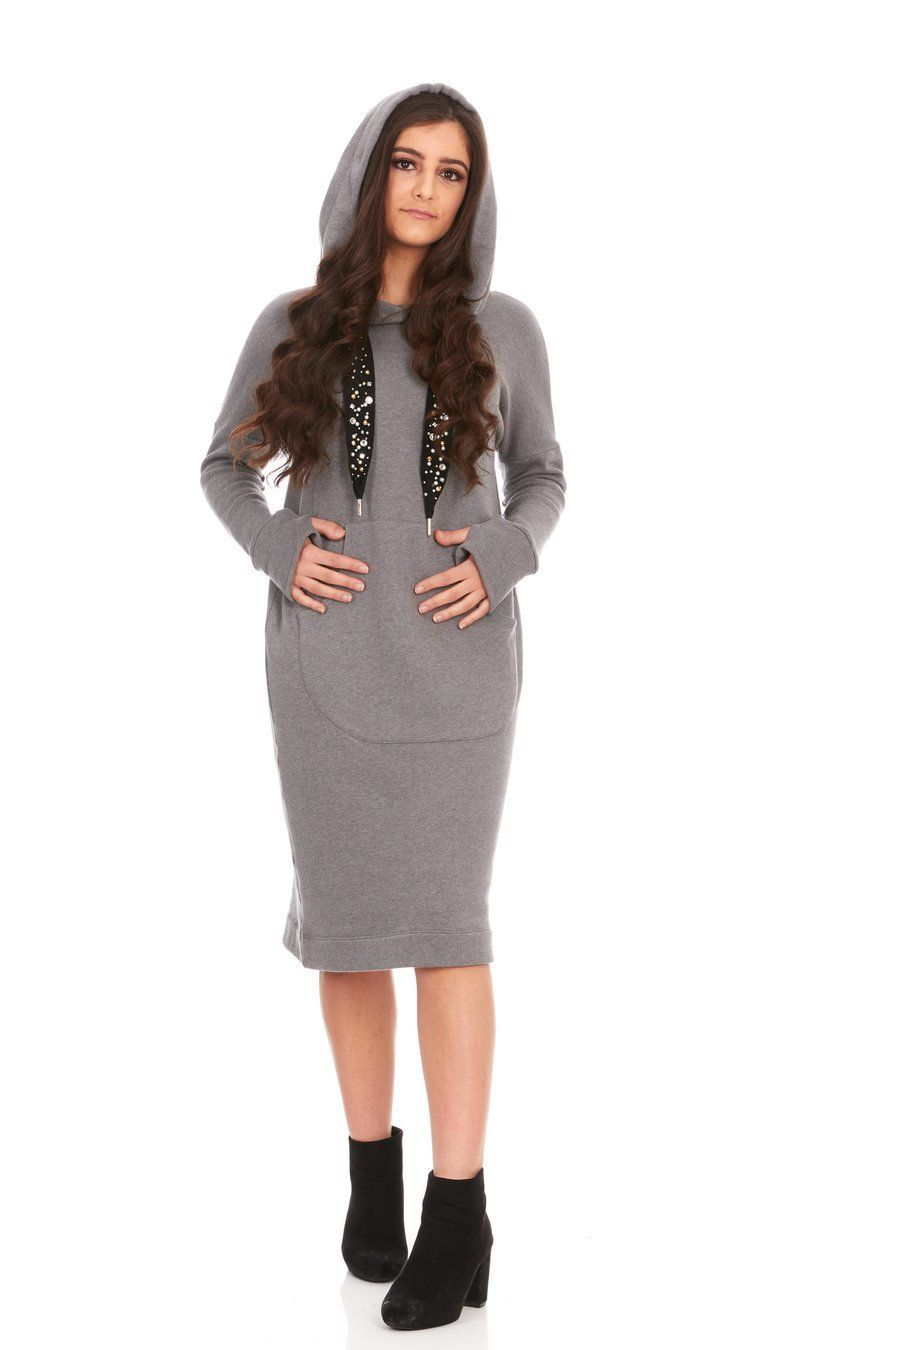 581d7a172b adorable and cozy sweater dress with dazzled drawstrings!